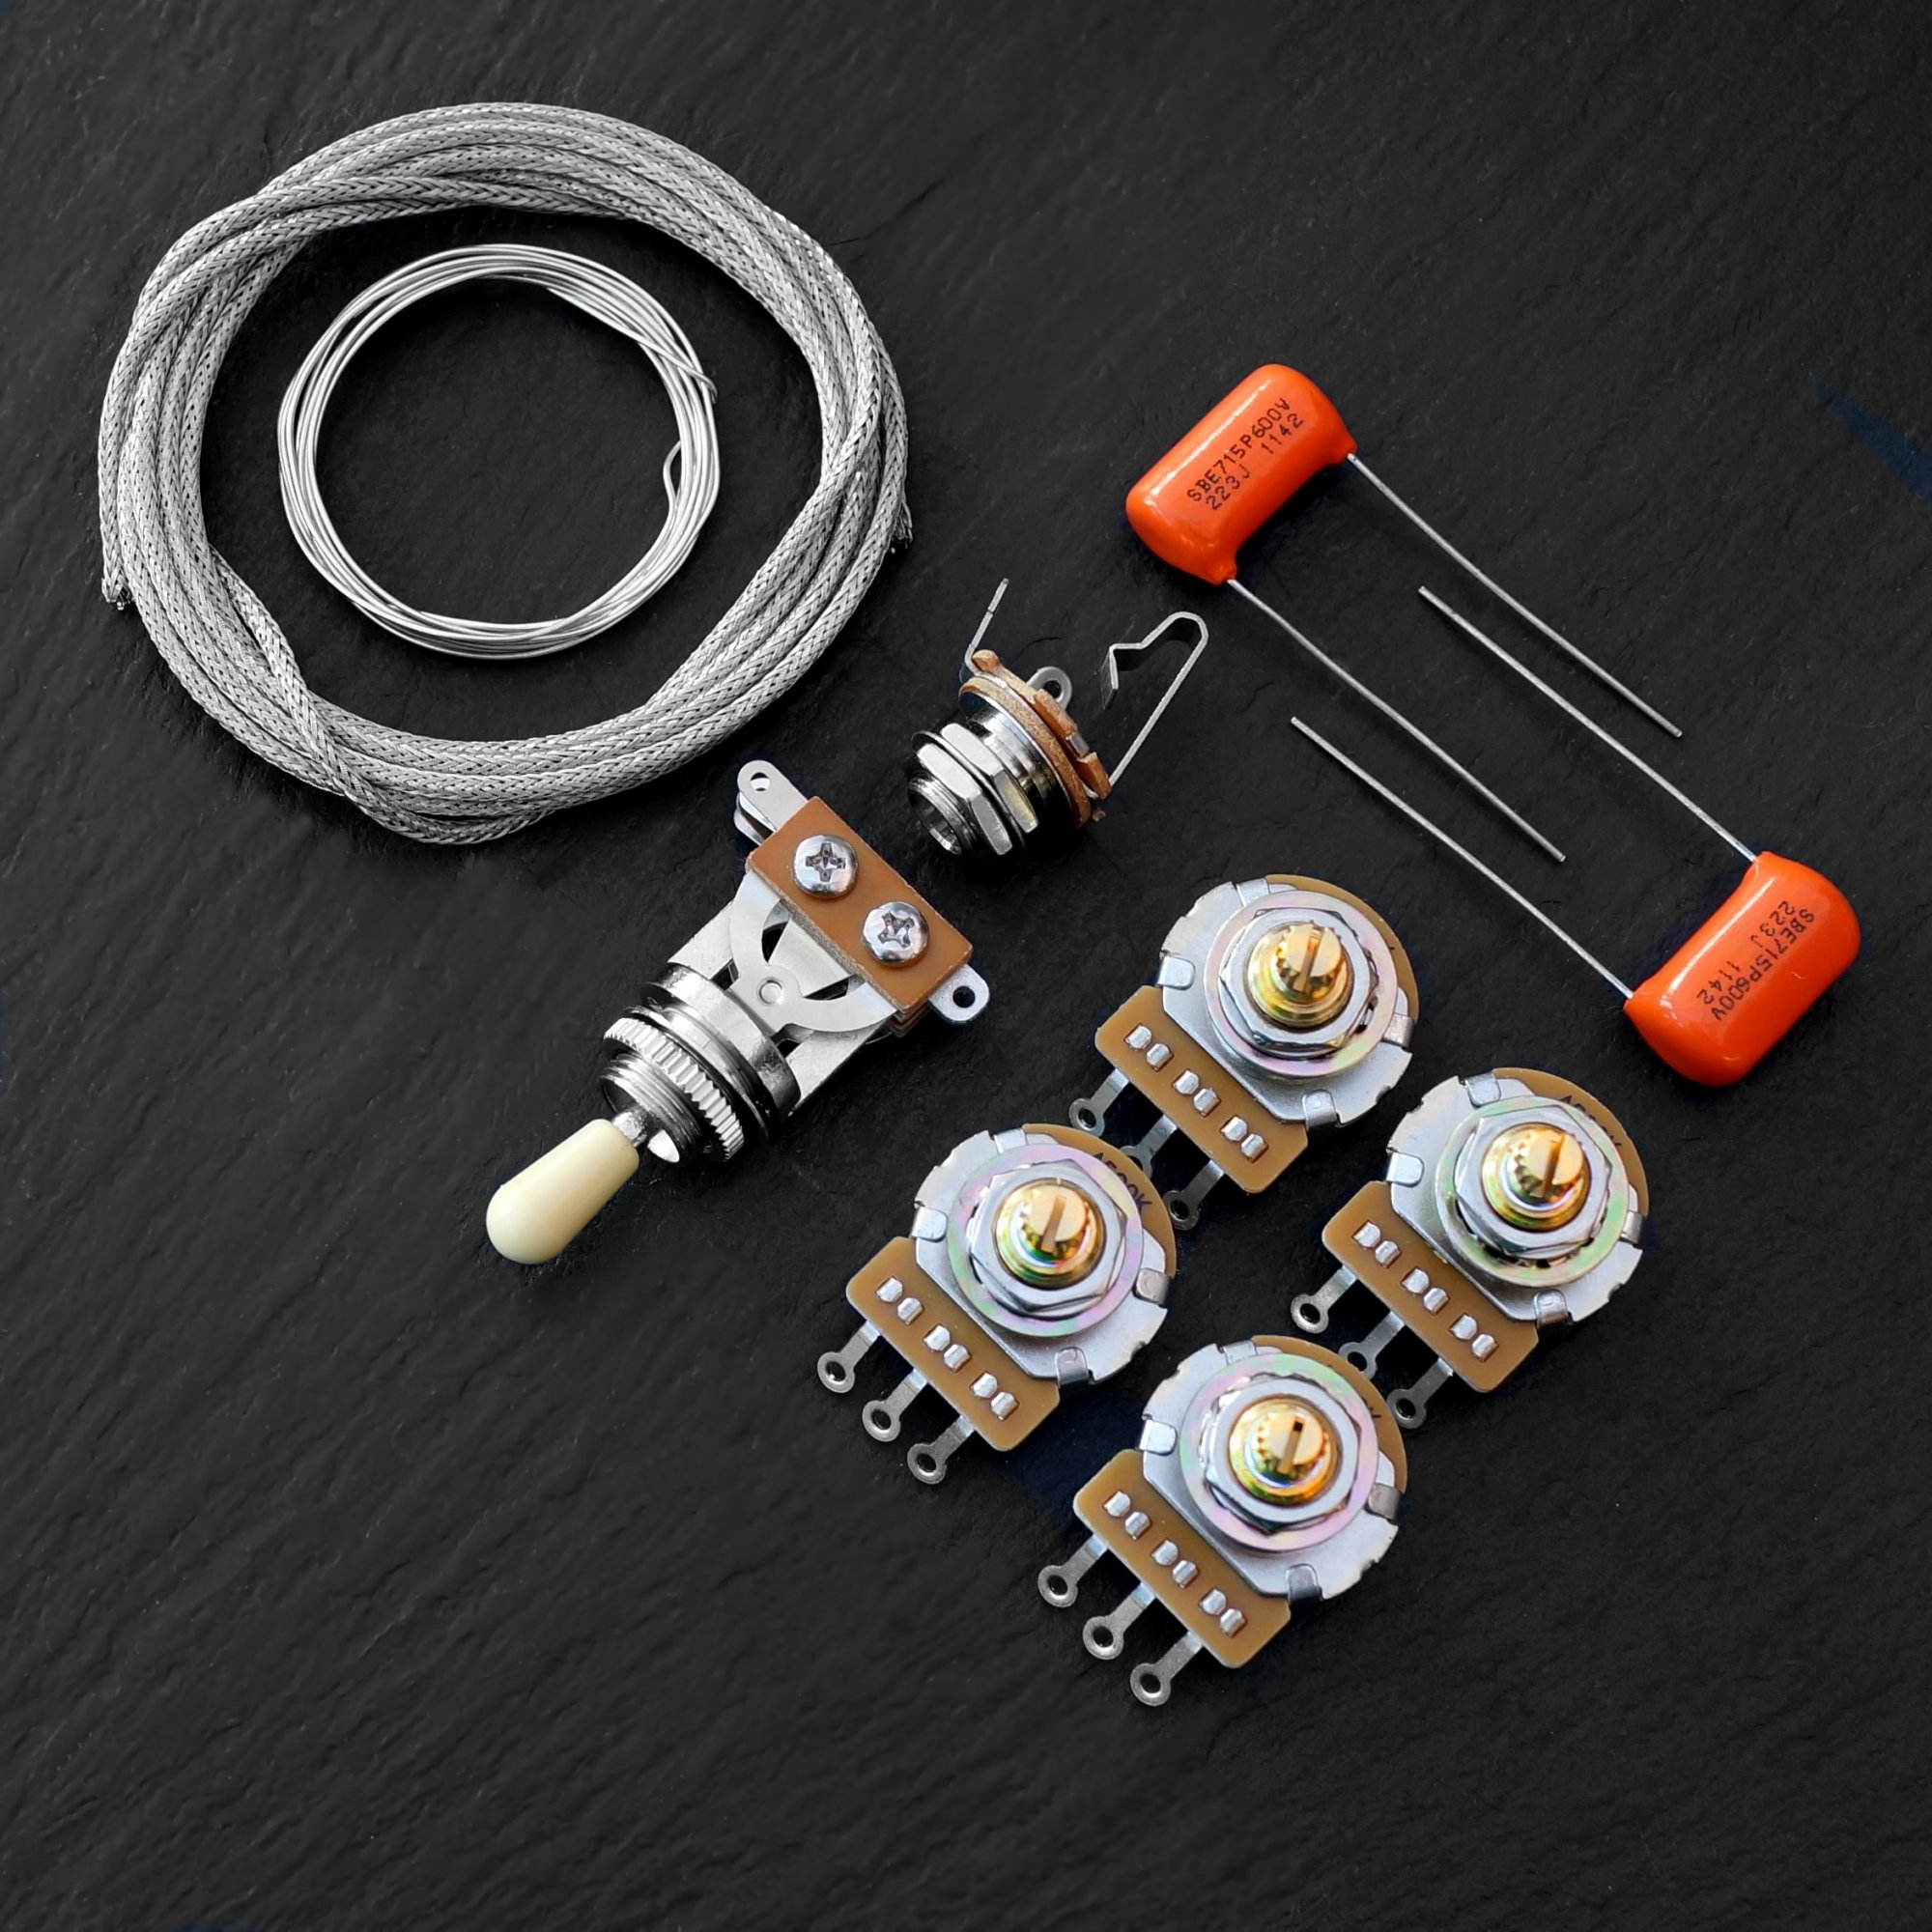 hight resolution of guitar kits by axetec wiring kits for les paul sg 335 gibson wiring kit uk